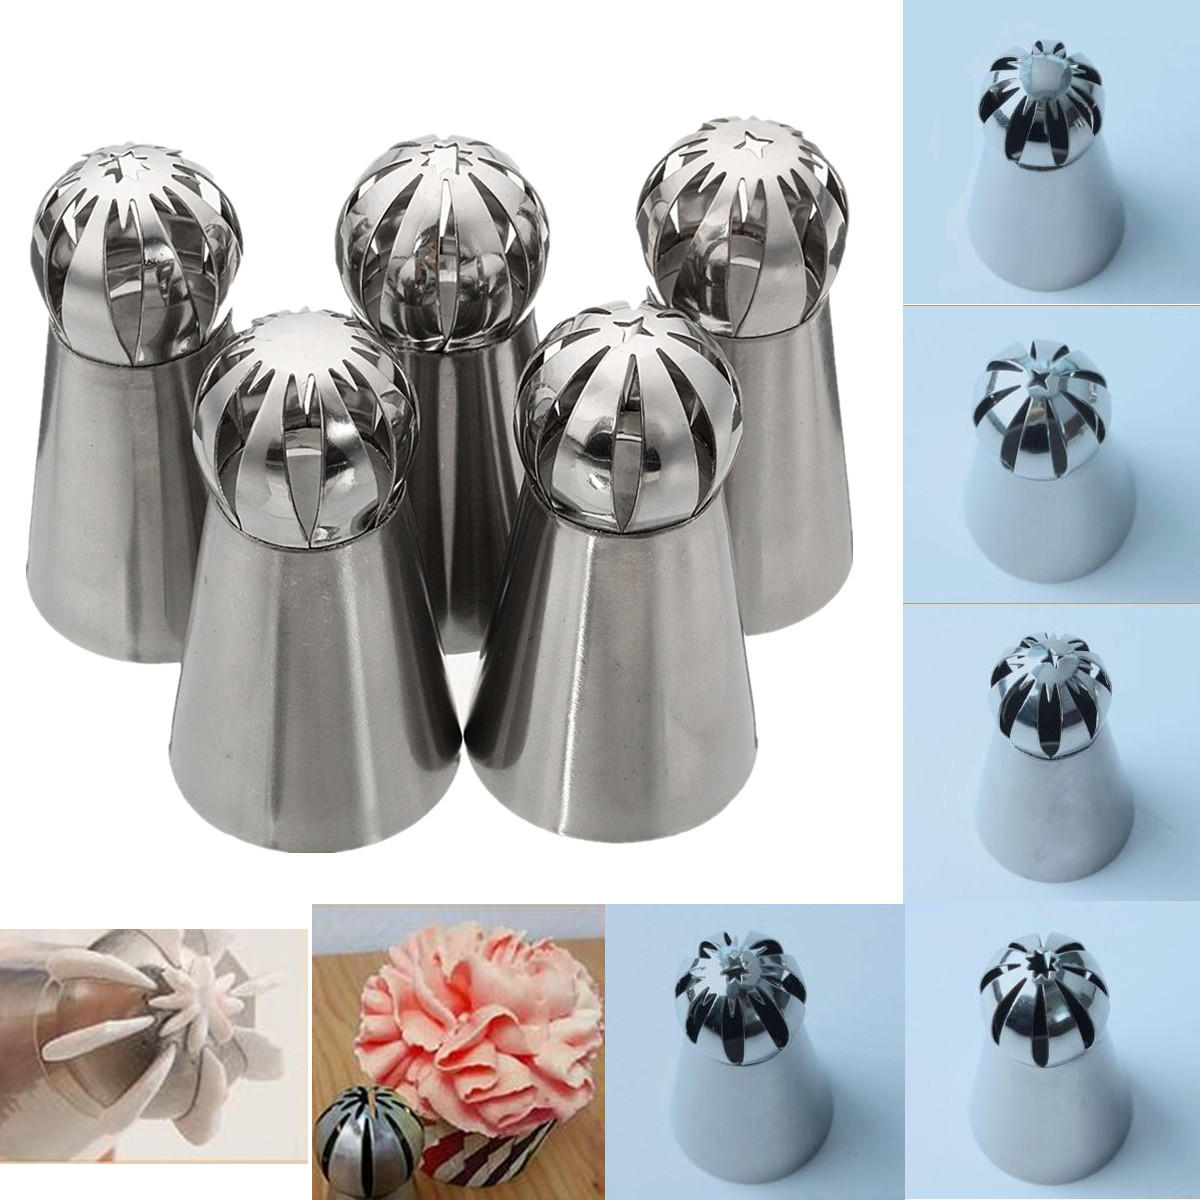 5Pcs Stainless Steel Nozzles Dual Color Lcing Piping Bag Cake Tool Cake Decoration Converter - 6